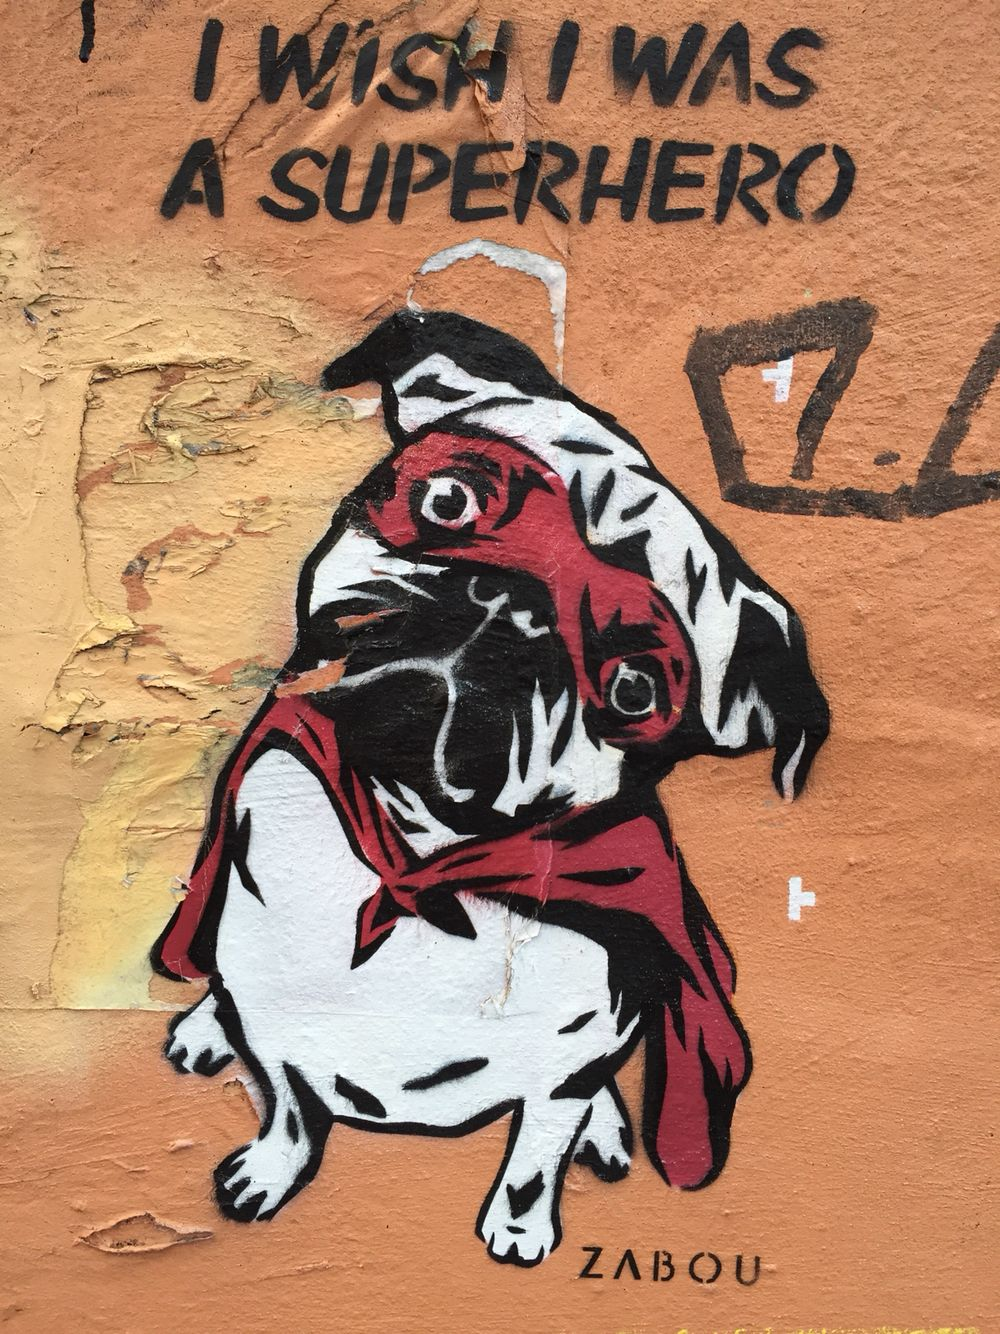 Super Hero Graffiti Street Art In Broadway Market By Zabou  # Muebles Tudela Roa